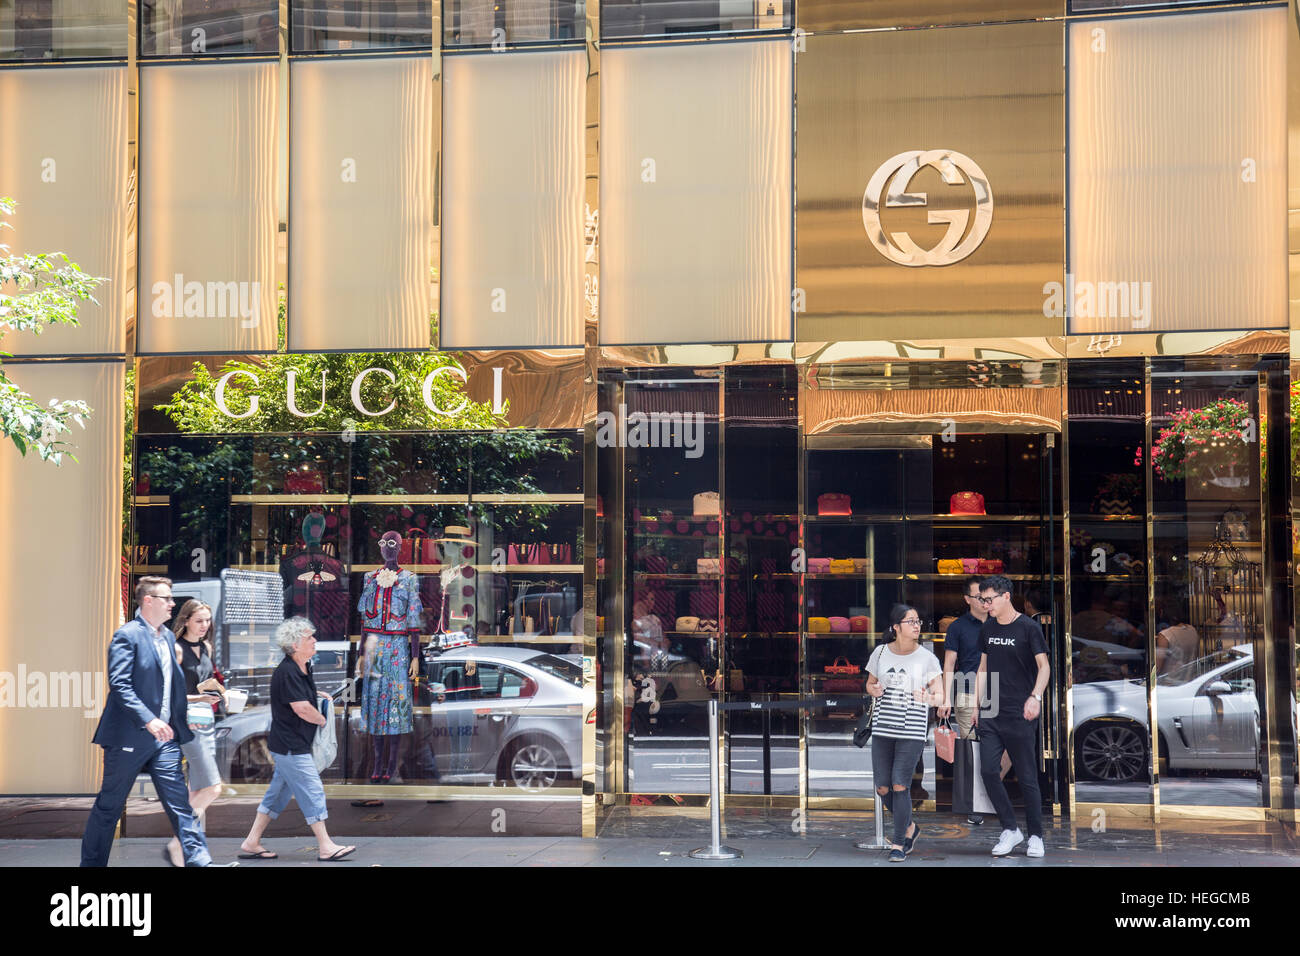 Gucci Luxury Brand Store In Sydney City Centre Australia Gucci Is An Stock Photo Alamy